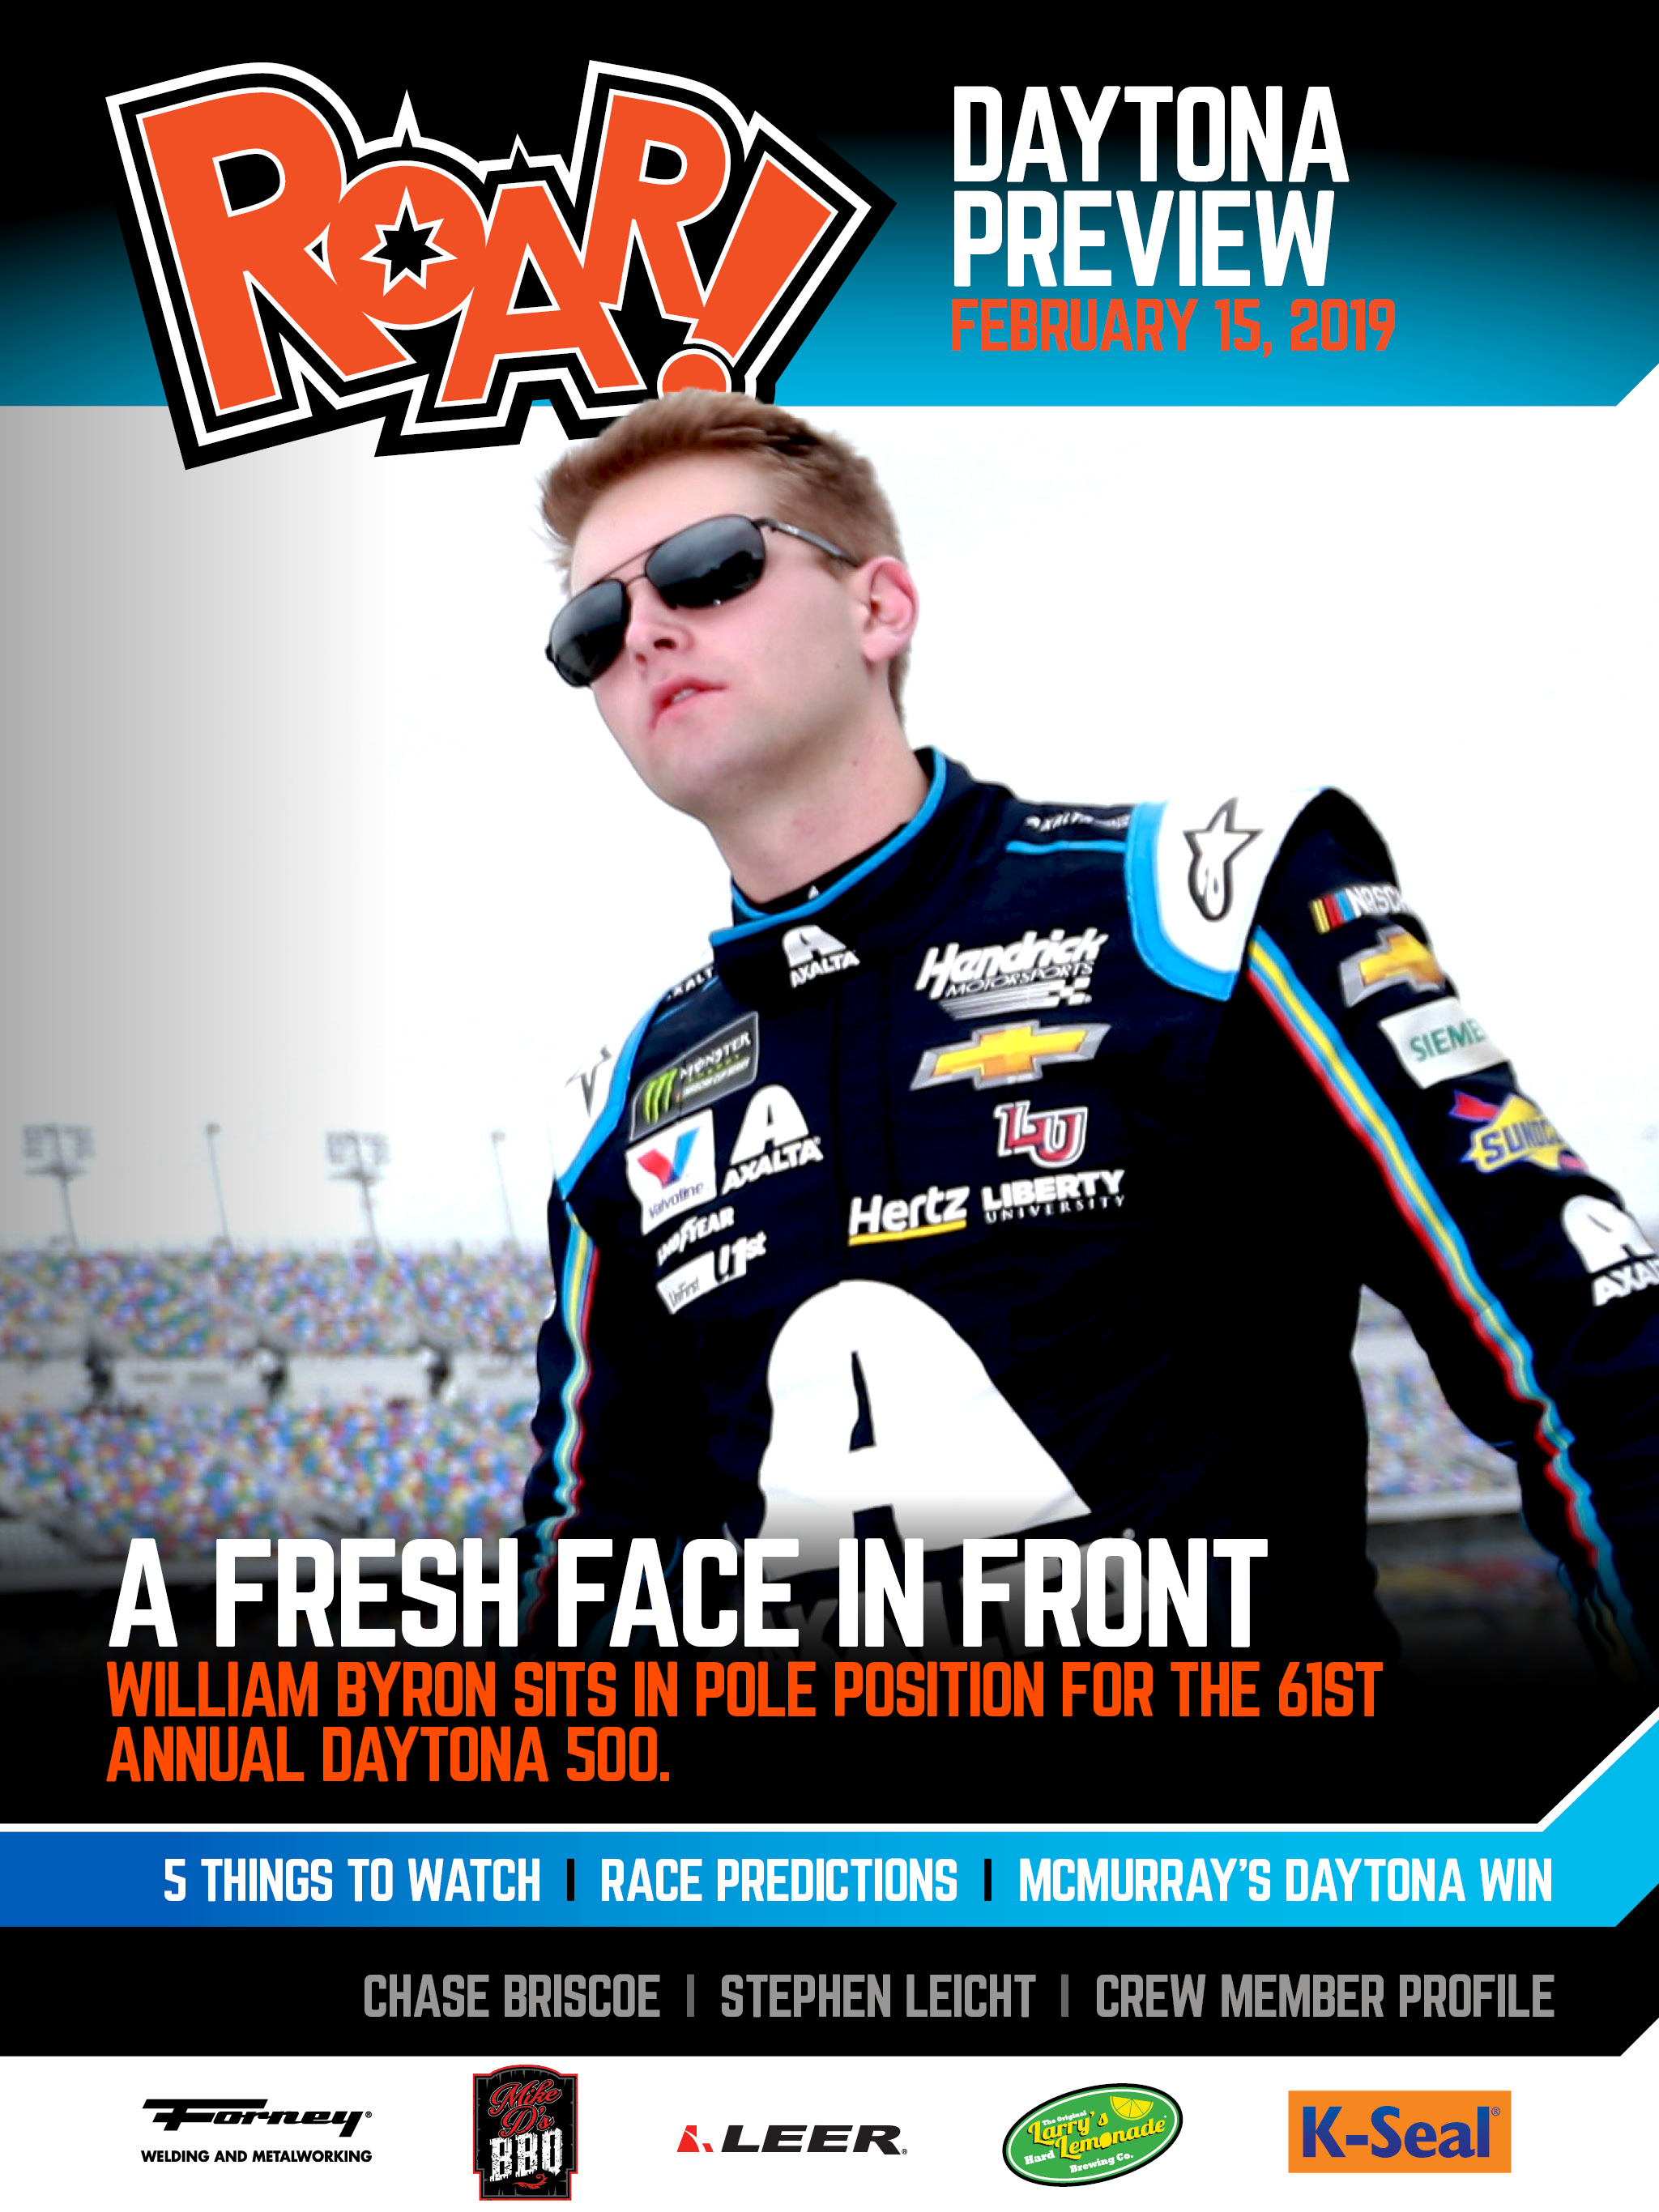 ROAR Daytona Preview February 2019